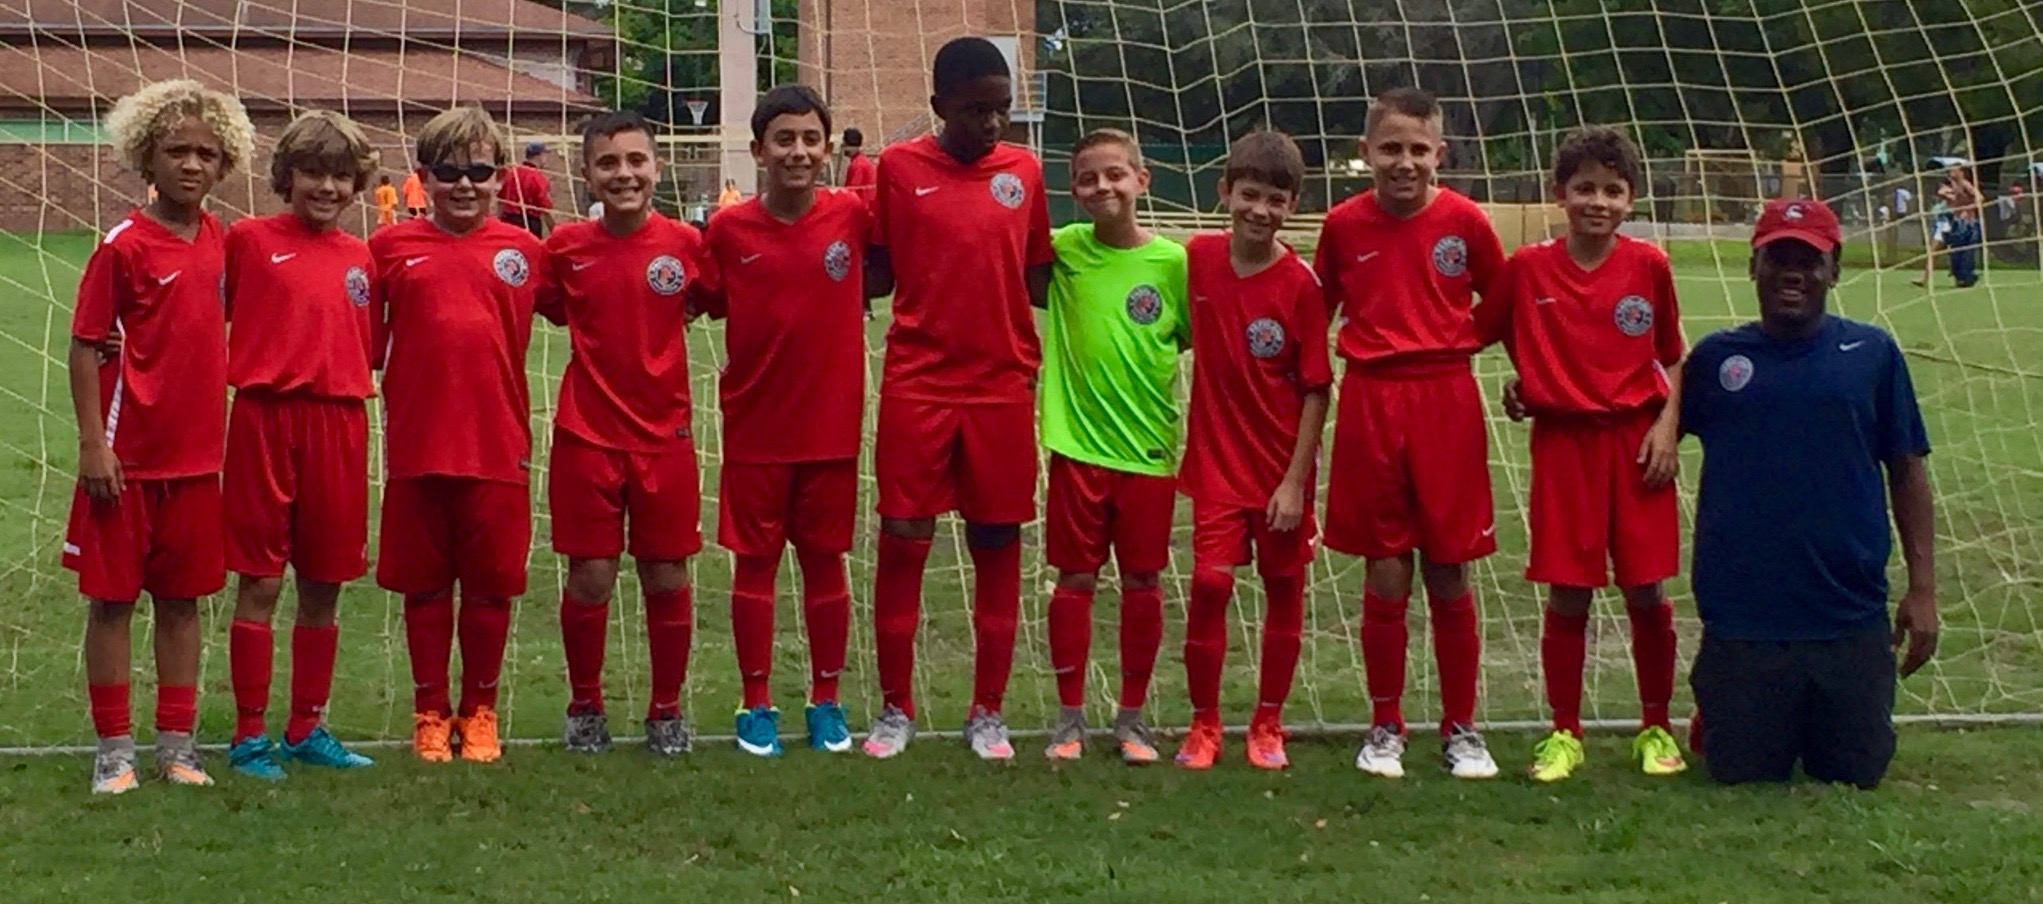 U11 Boys Red United Soccer Cup Champions